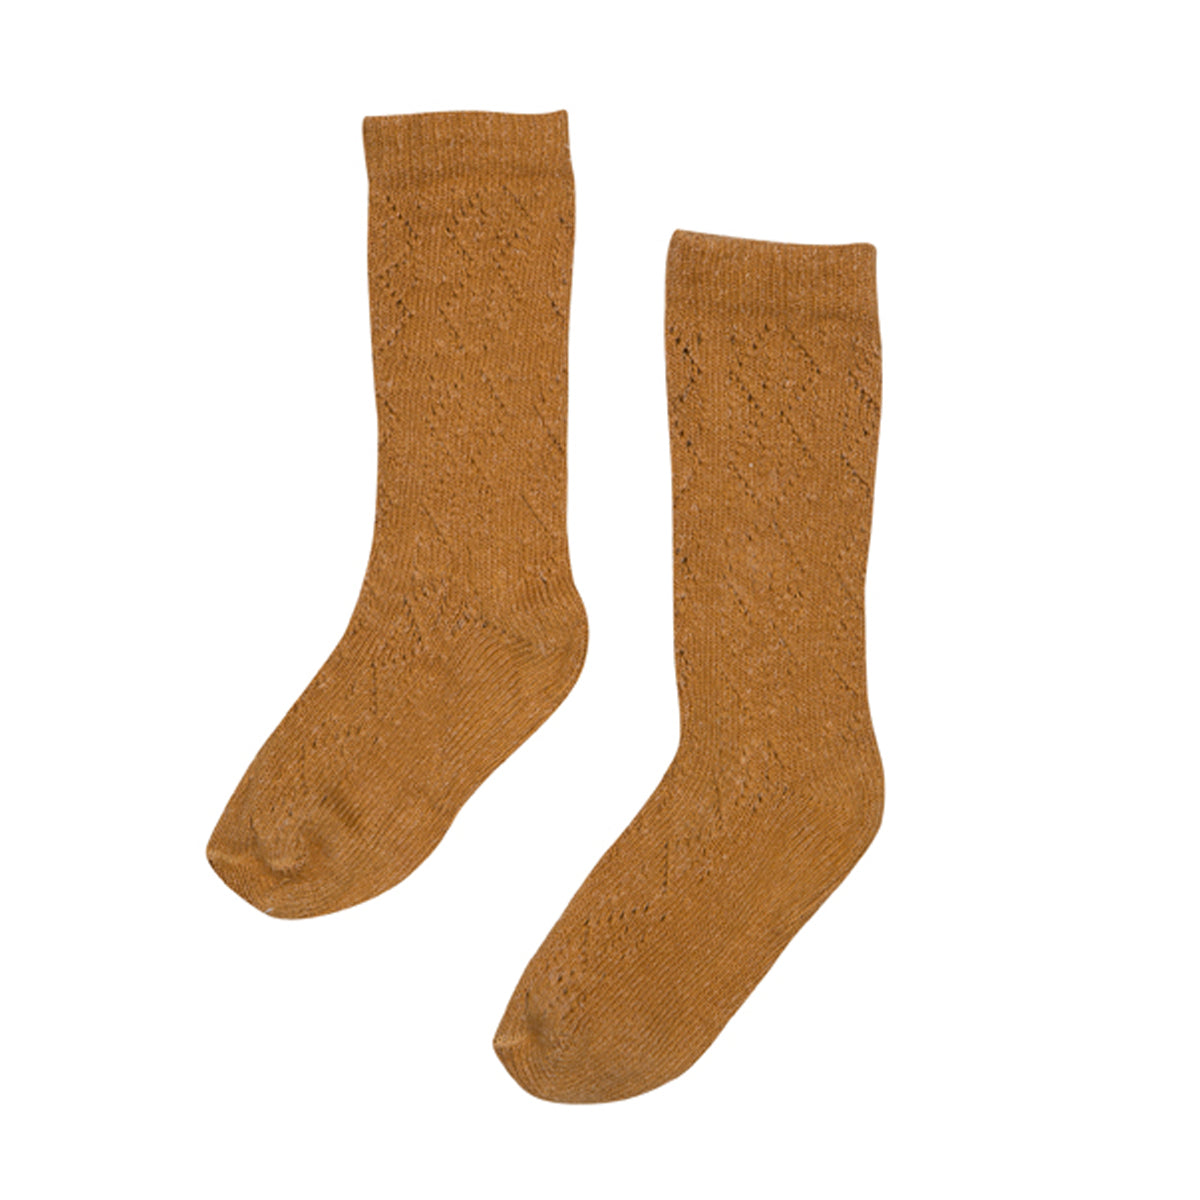 BEBE ORGANIC 'LOUISA' SOCKS, APPLE CINNAMON - Spinel Boutique